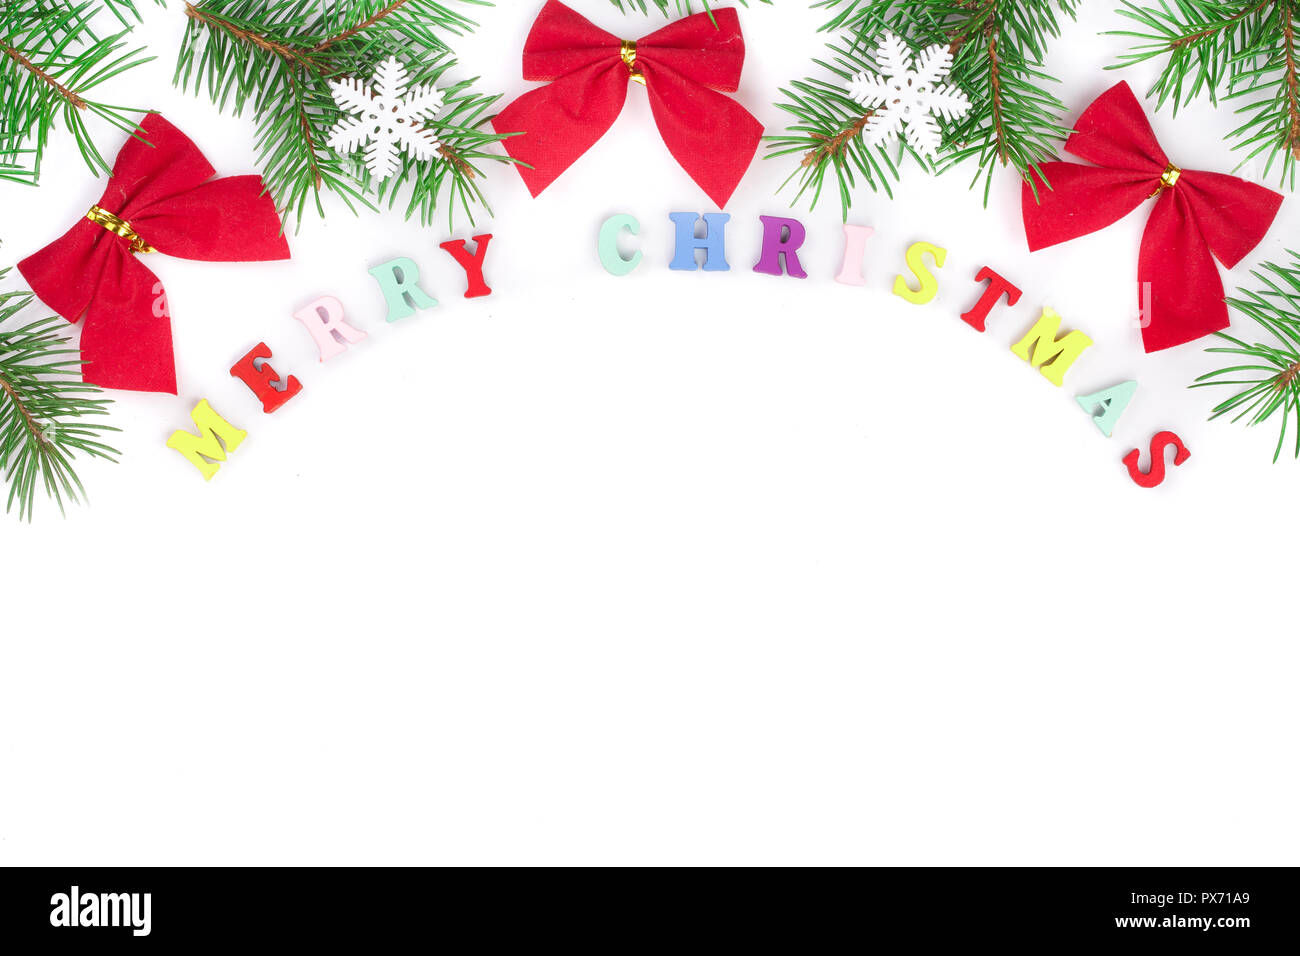 merry christmas inscription in frame made of fir branches, festive ...